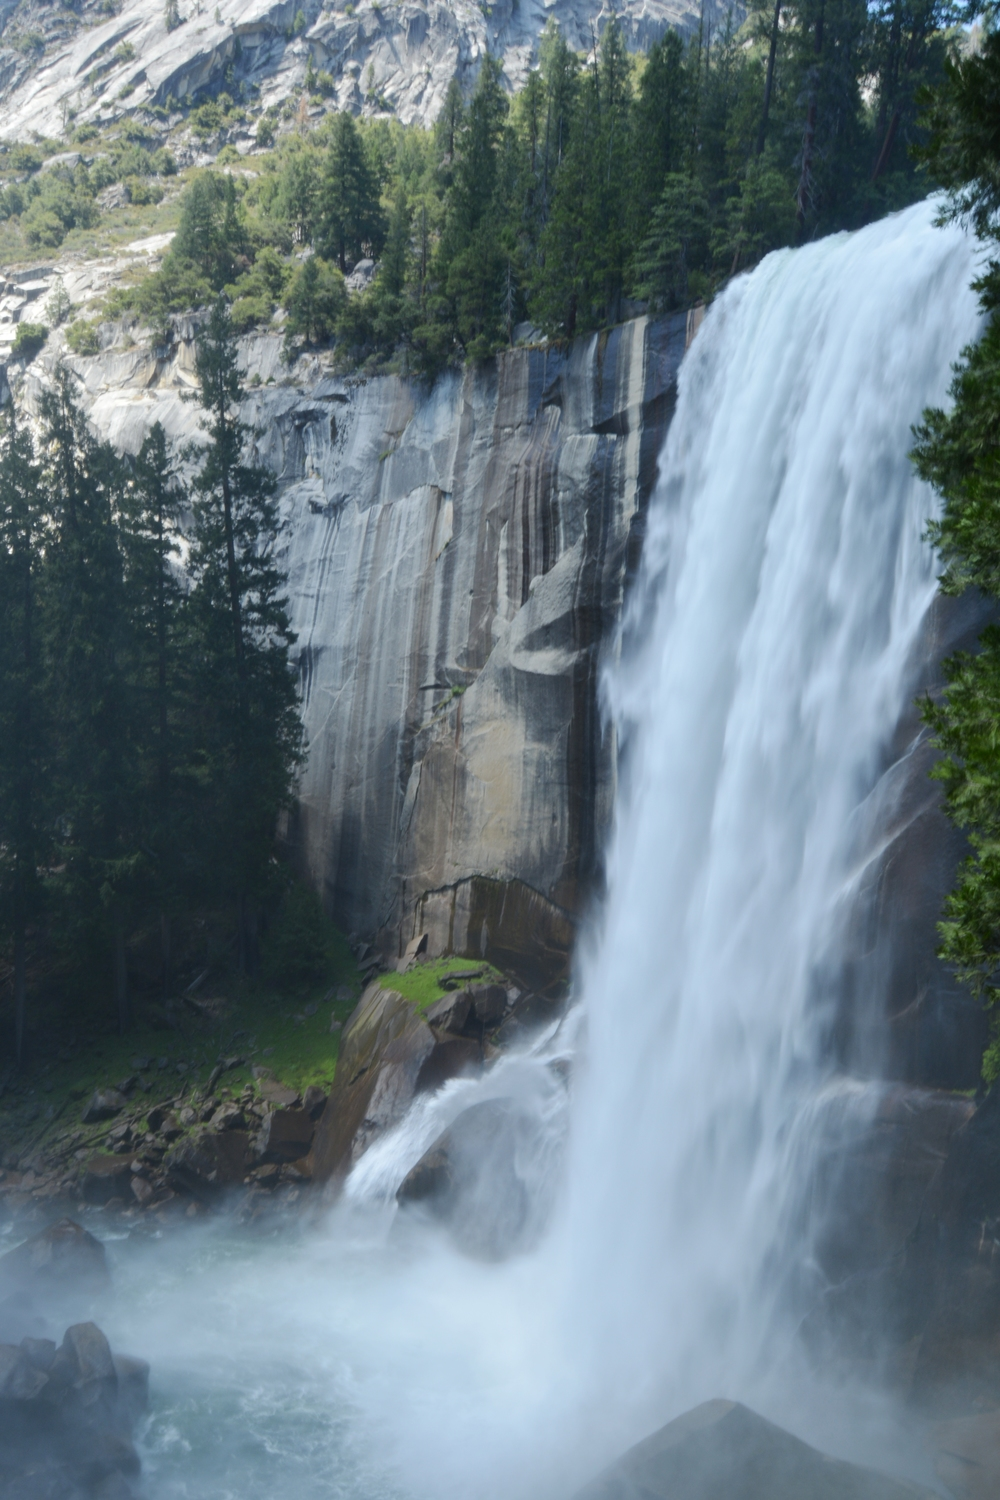 The view of Vernal Falls from the Mist Trail